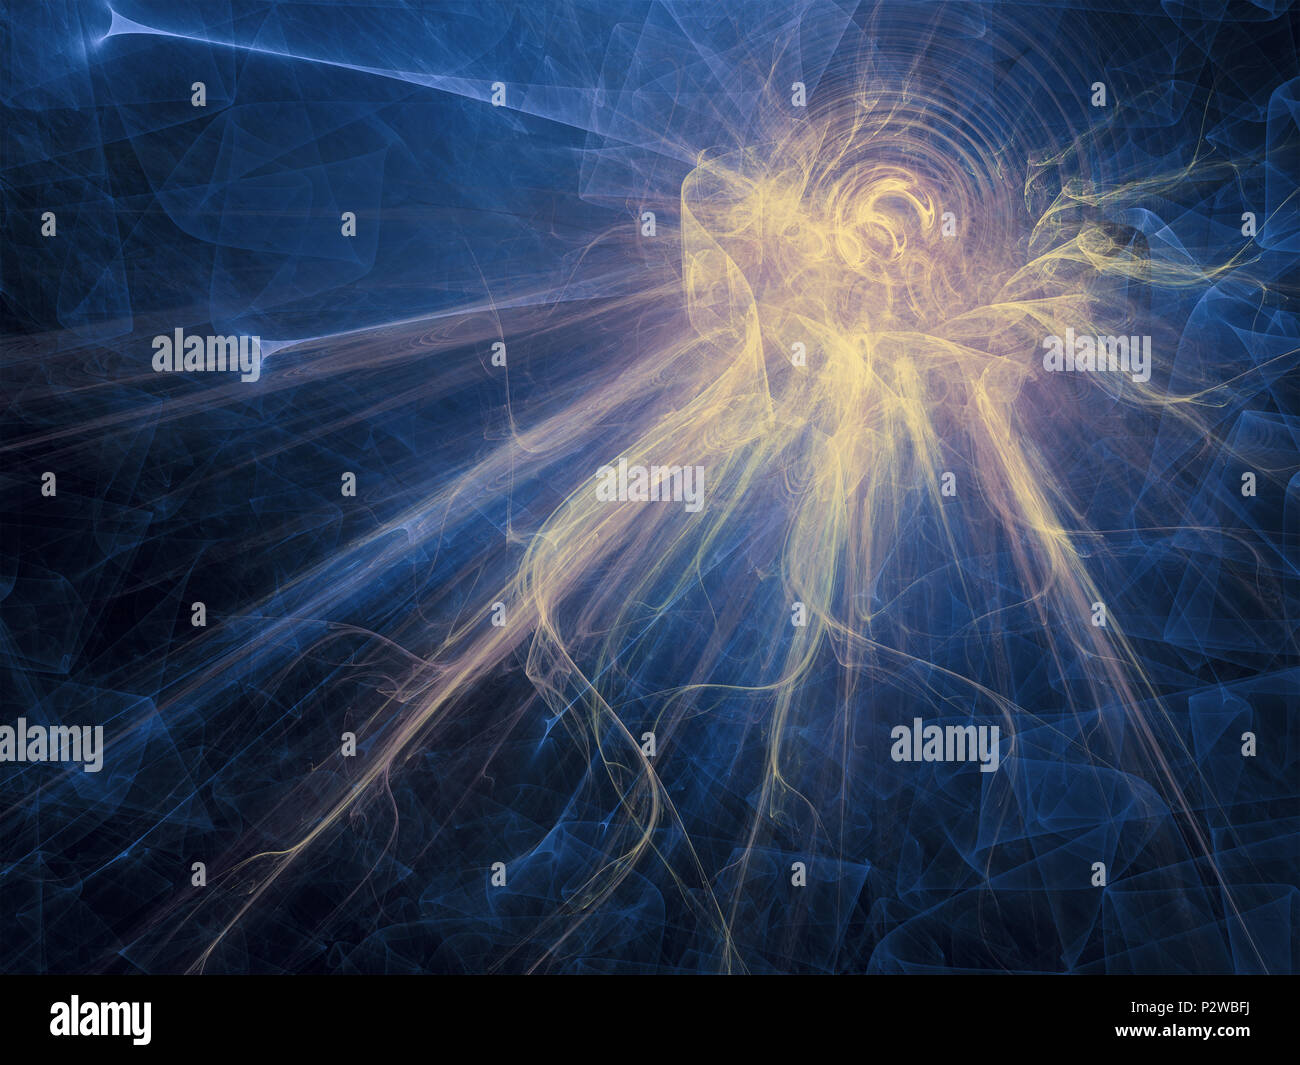 Drop of light. Pure energy concept. Explode of a solar ripple. Composite fractal background. - Stock Image